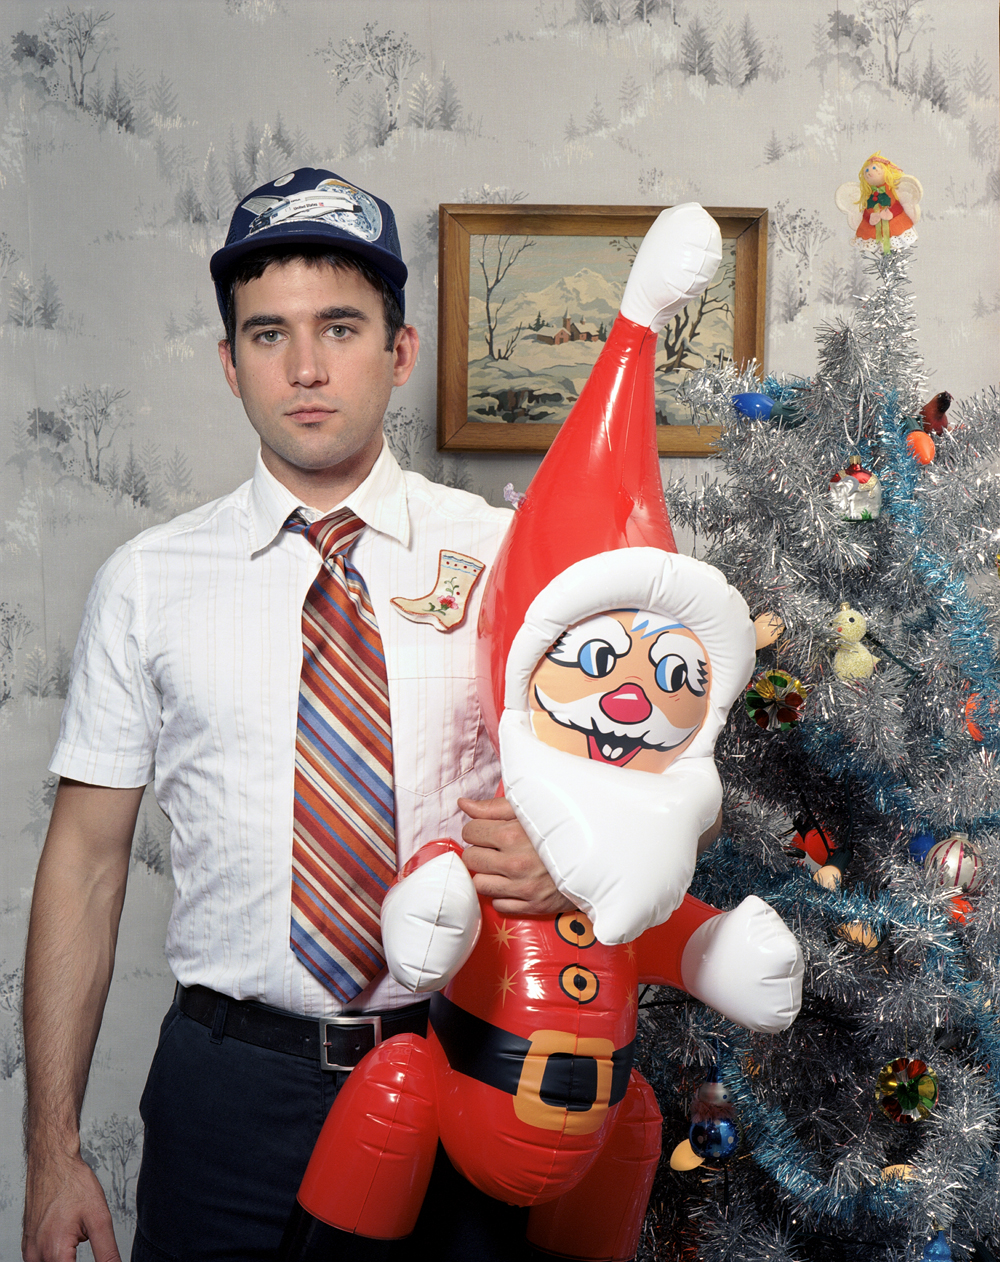 https://i1.wp.com/asthmatickitty.com/images/sufjanstevens/sufjan_xmas3_dennyrenshaw.jpg